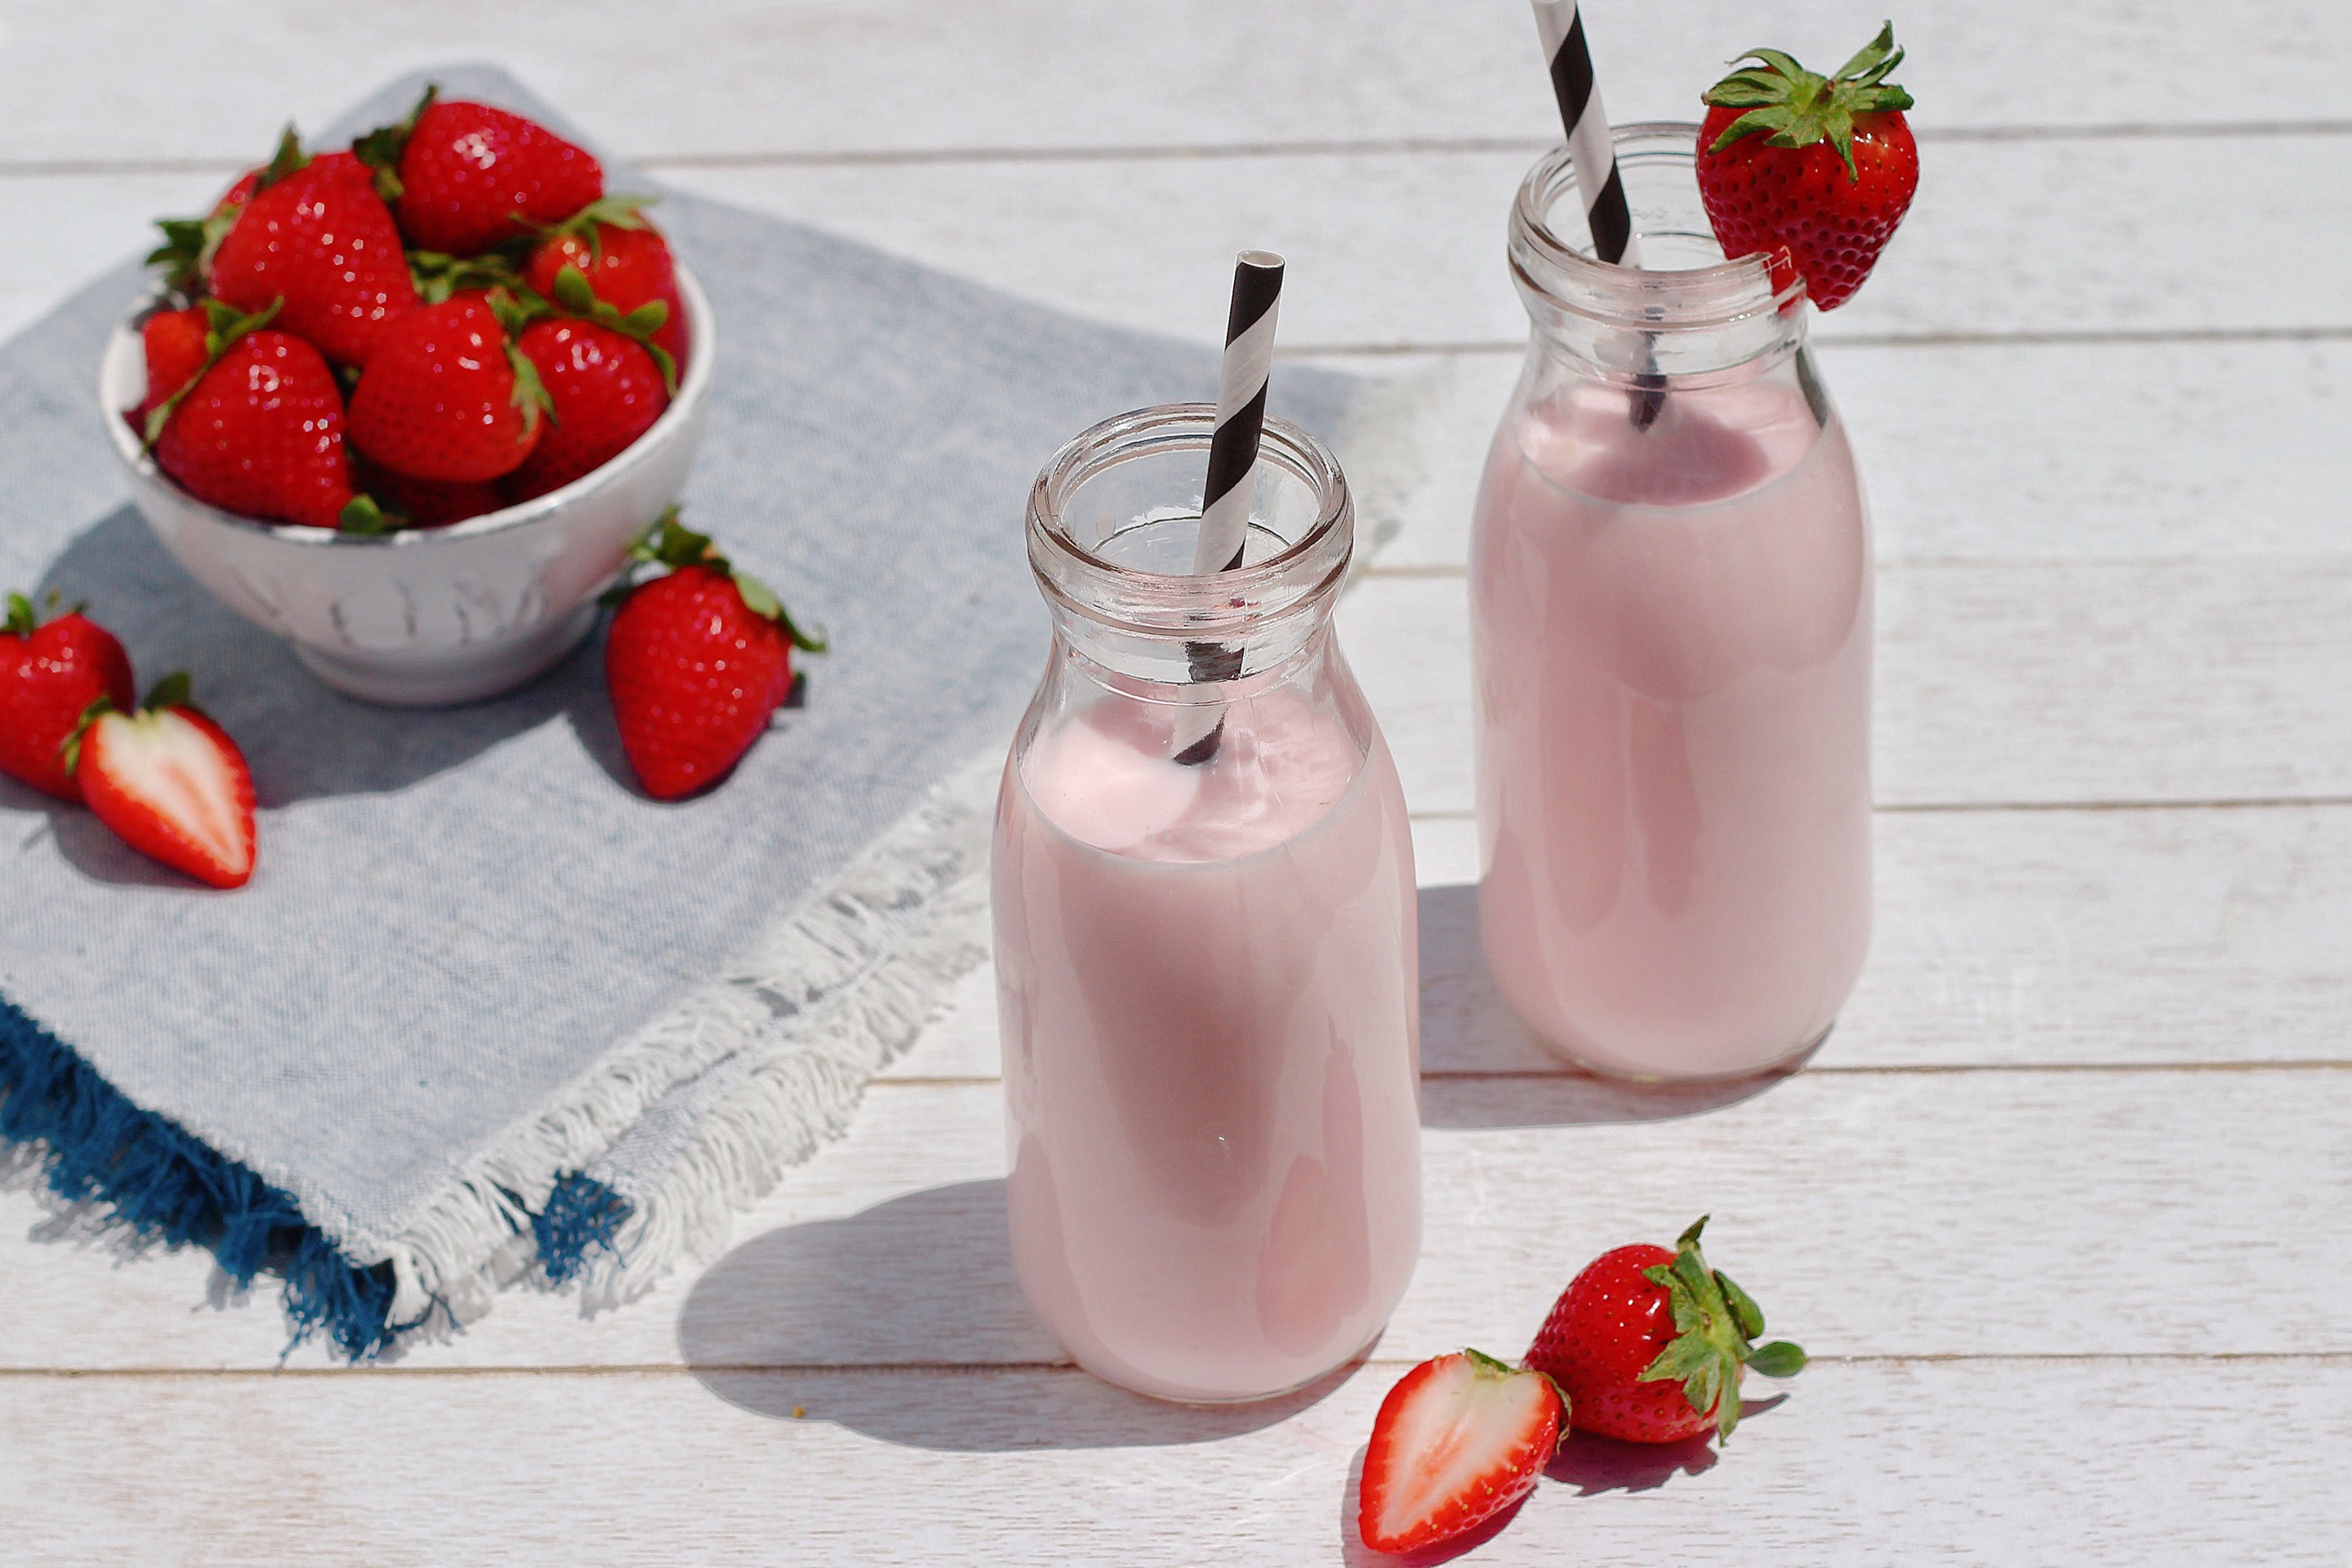 Strawberry Cashew Milk